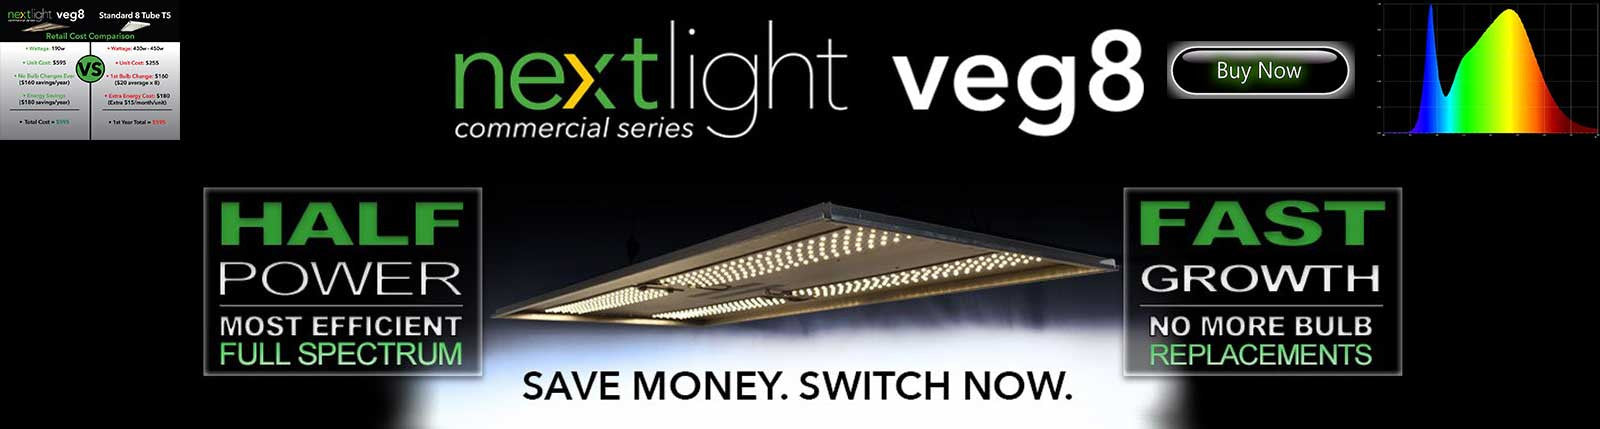 NextLight Veg 8 Banner | GrowersLights